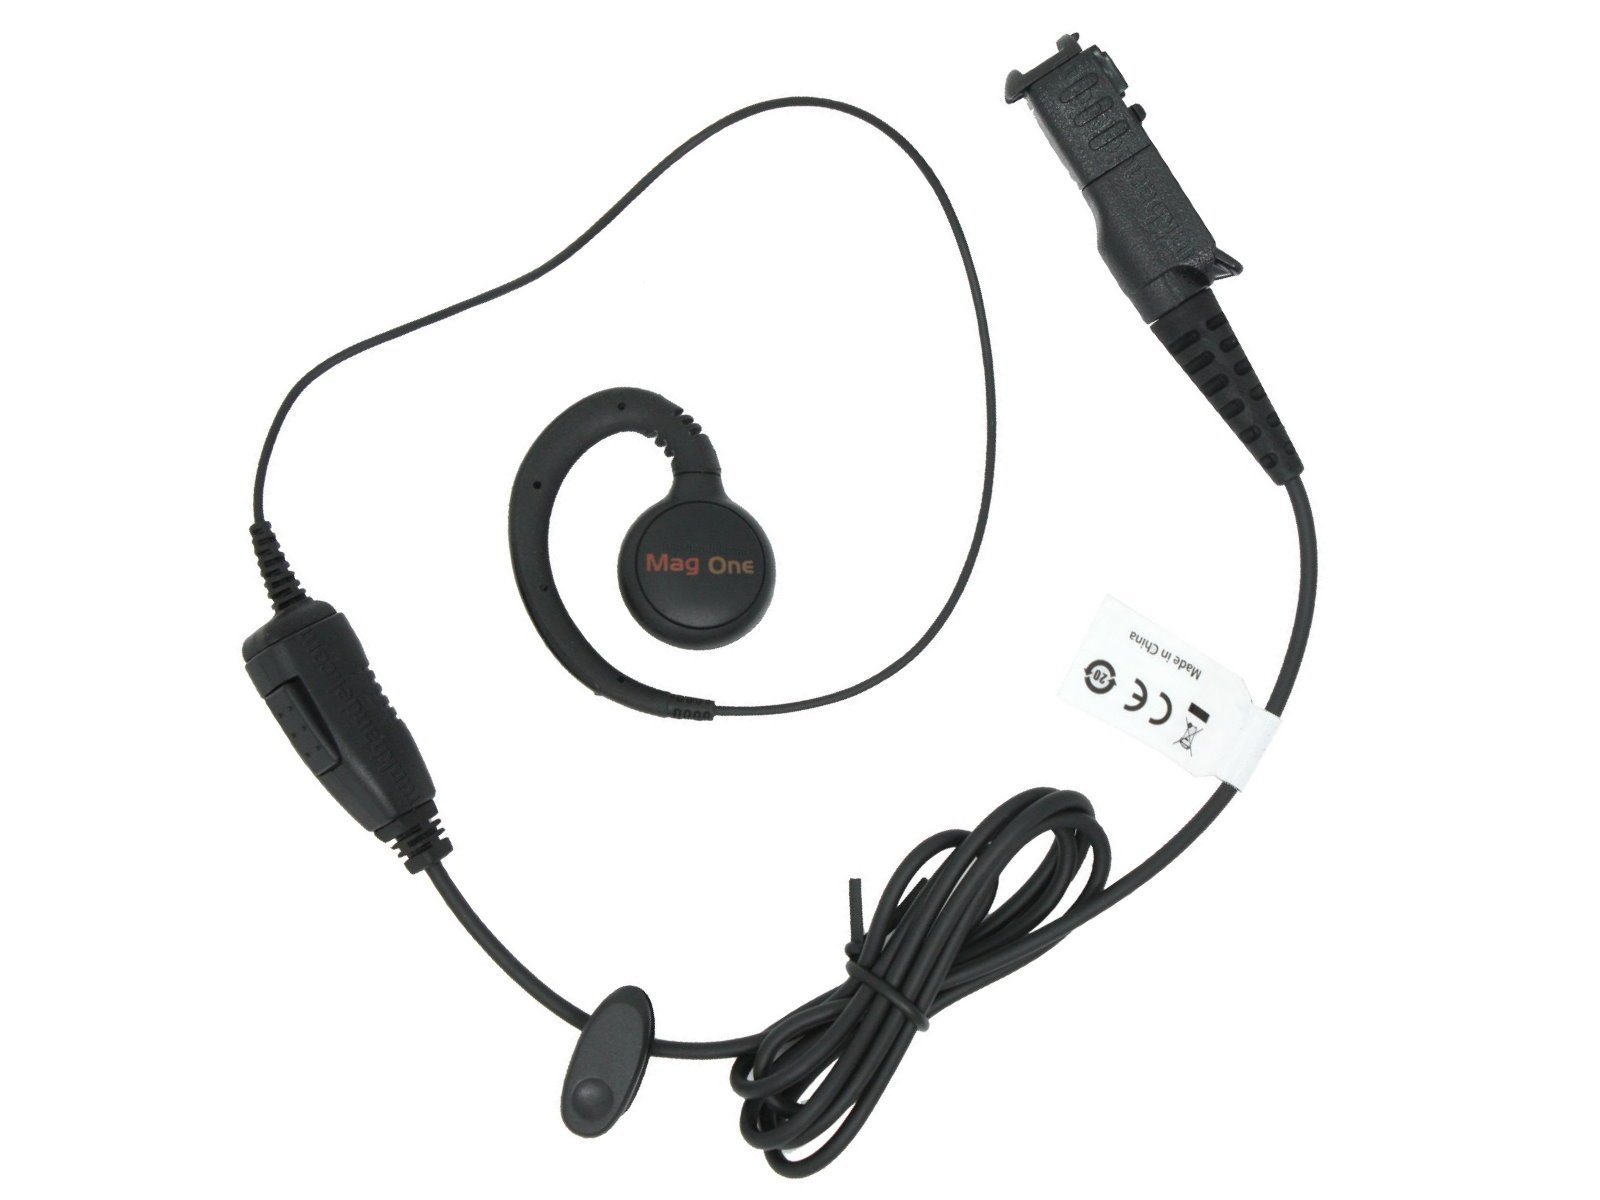 Motorola PMLN5727A Mag One Headset